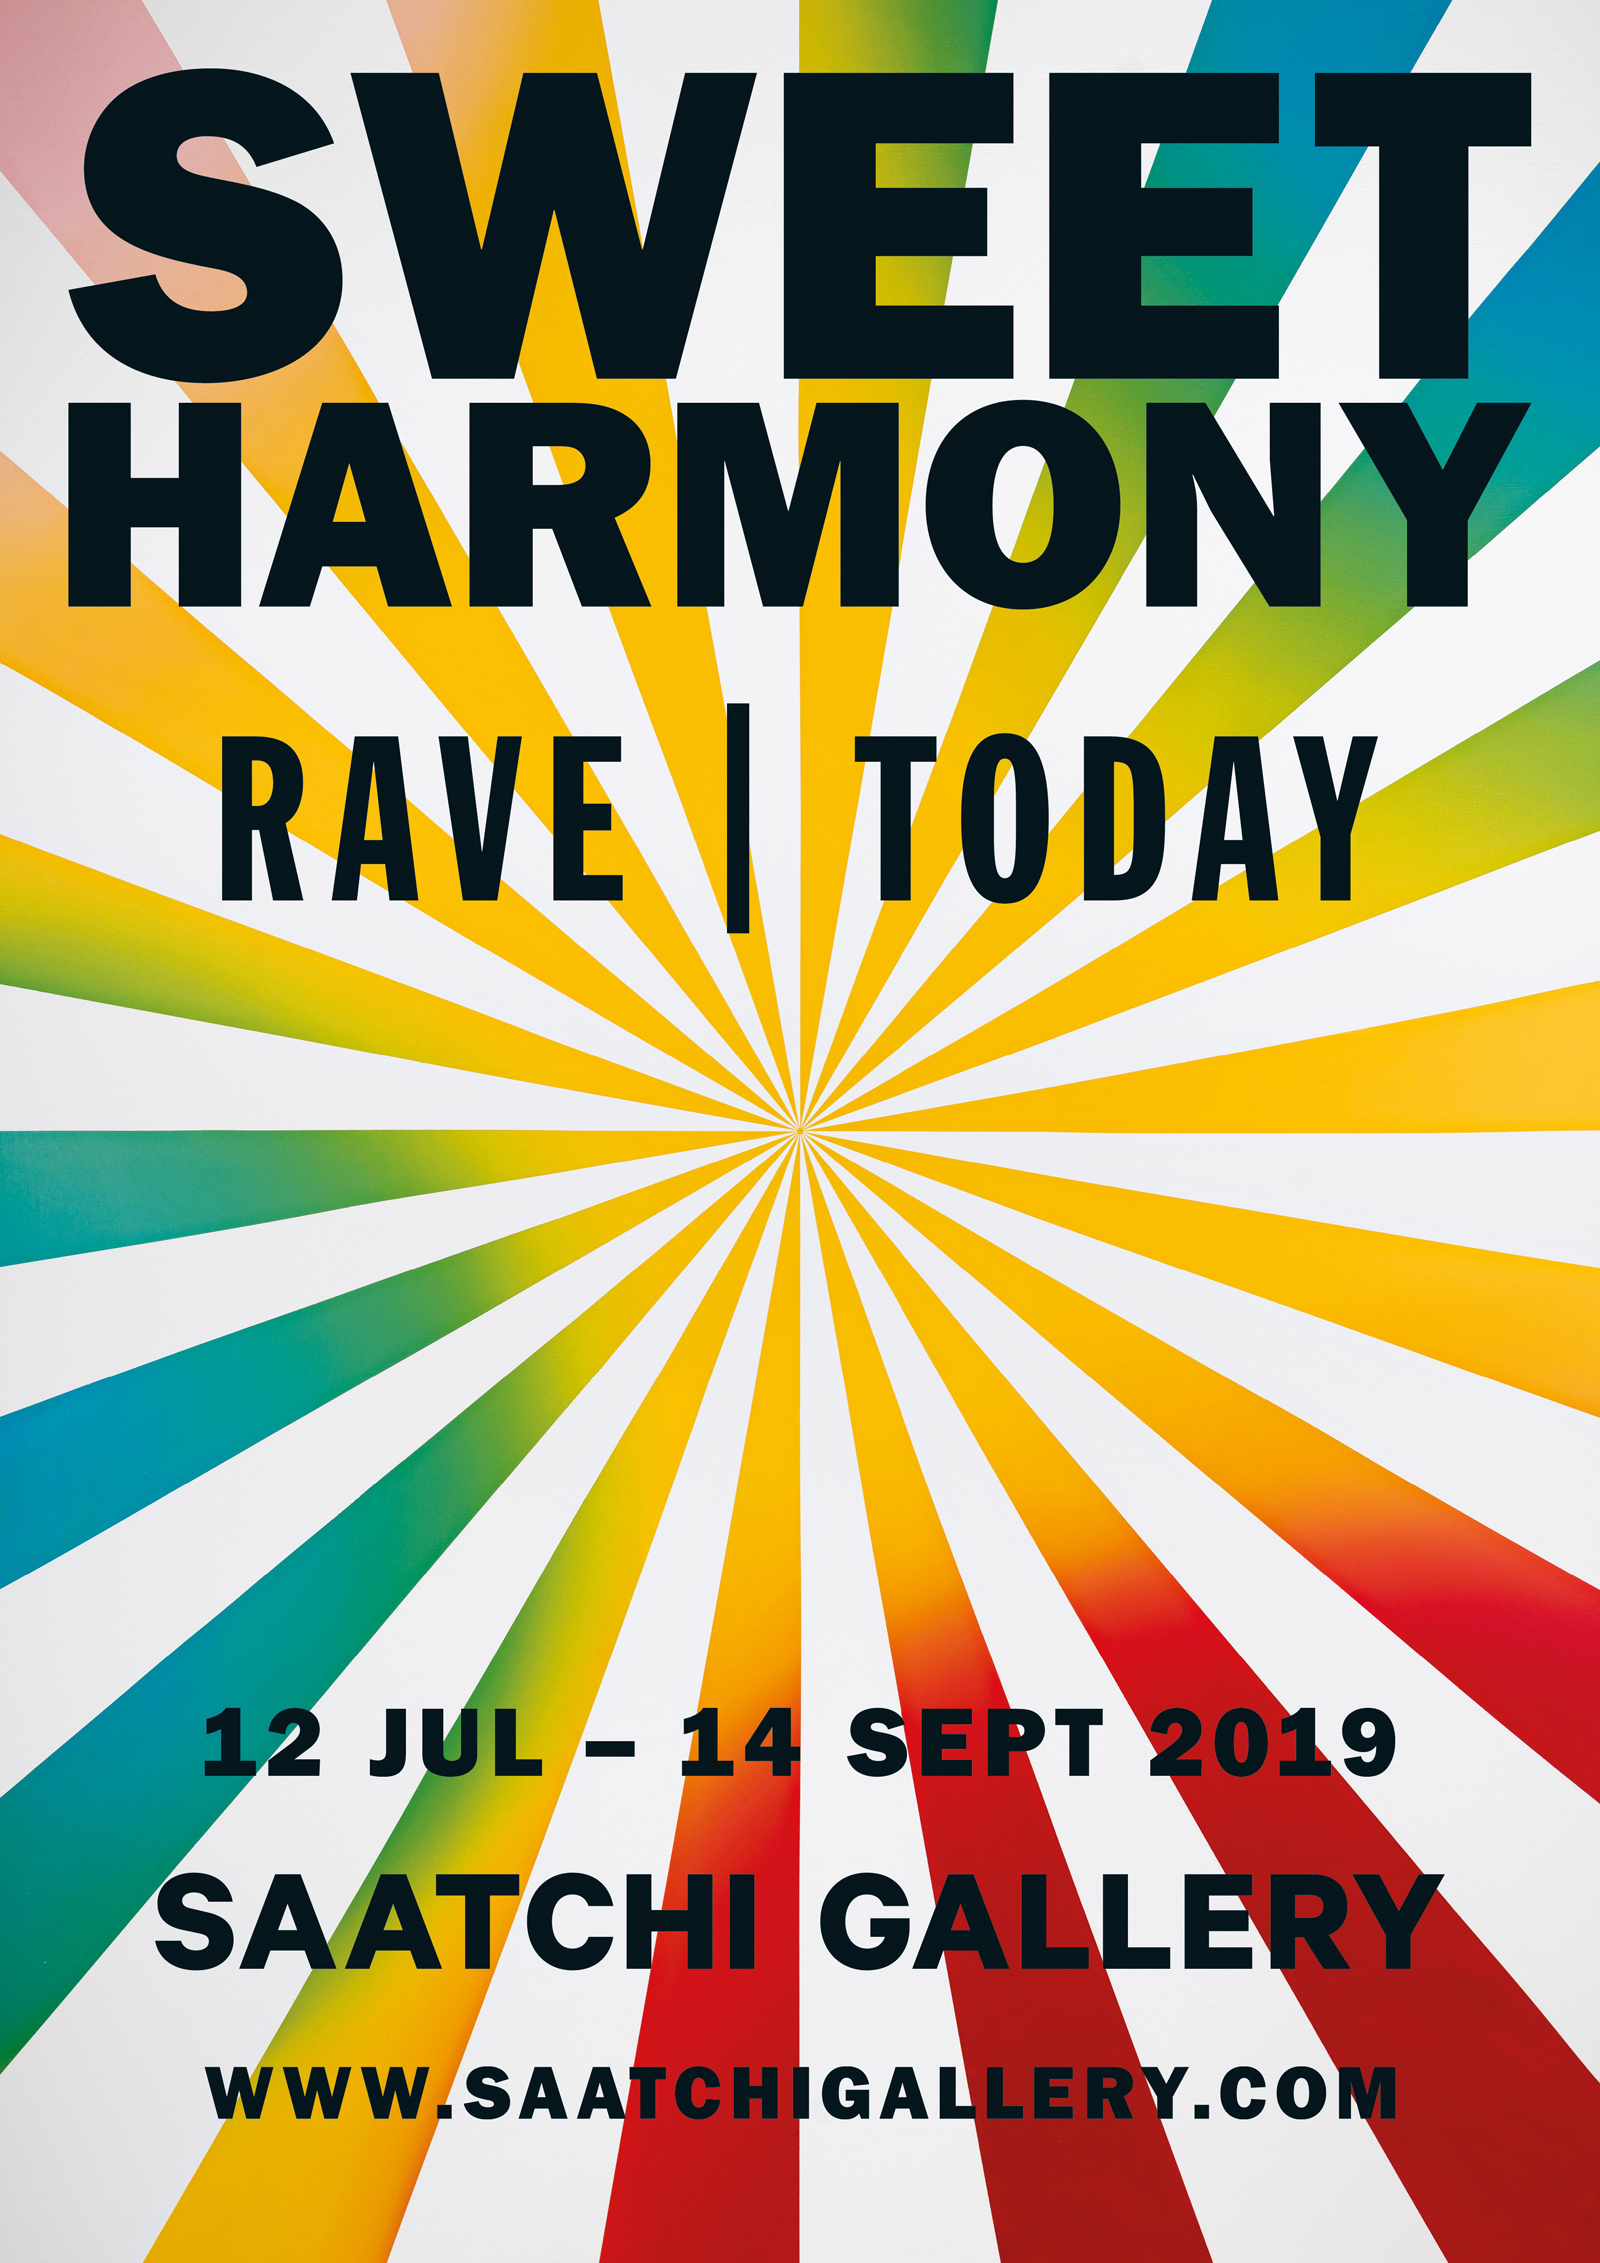 Sweet-Harmony-Saatchi-Gallery-Rave-Today-Poster-James-Lee-Duffy.jpg